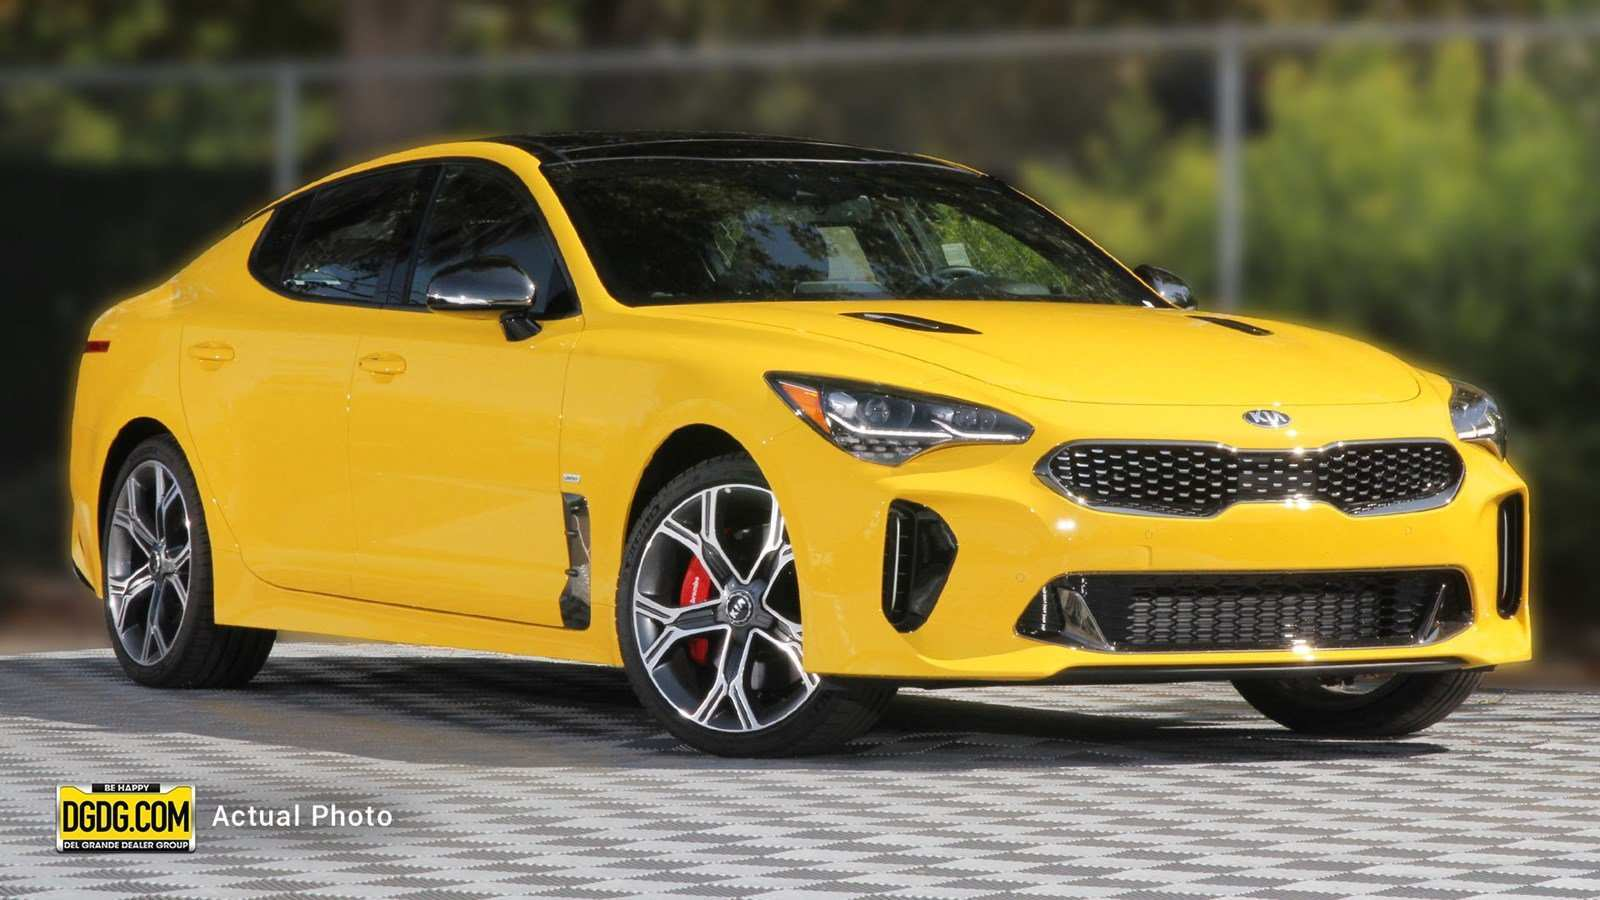 88 Great 2020 Kia Stinger Gt2 Redesign and Concept with 2020 Kia Stinger Gt2